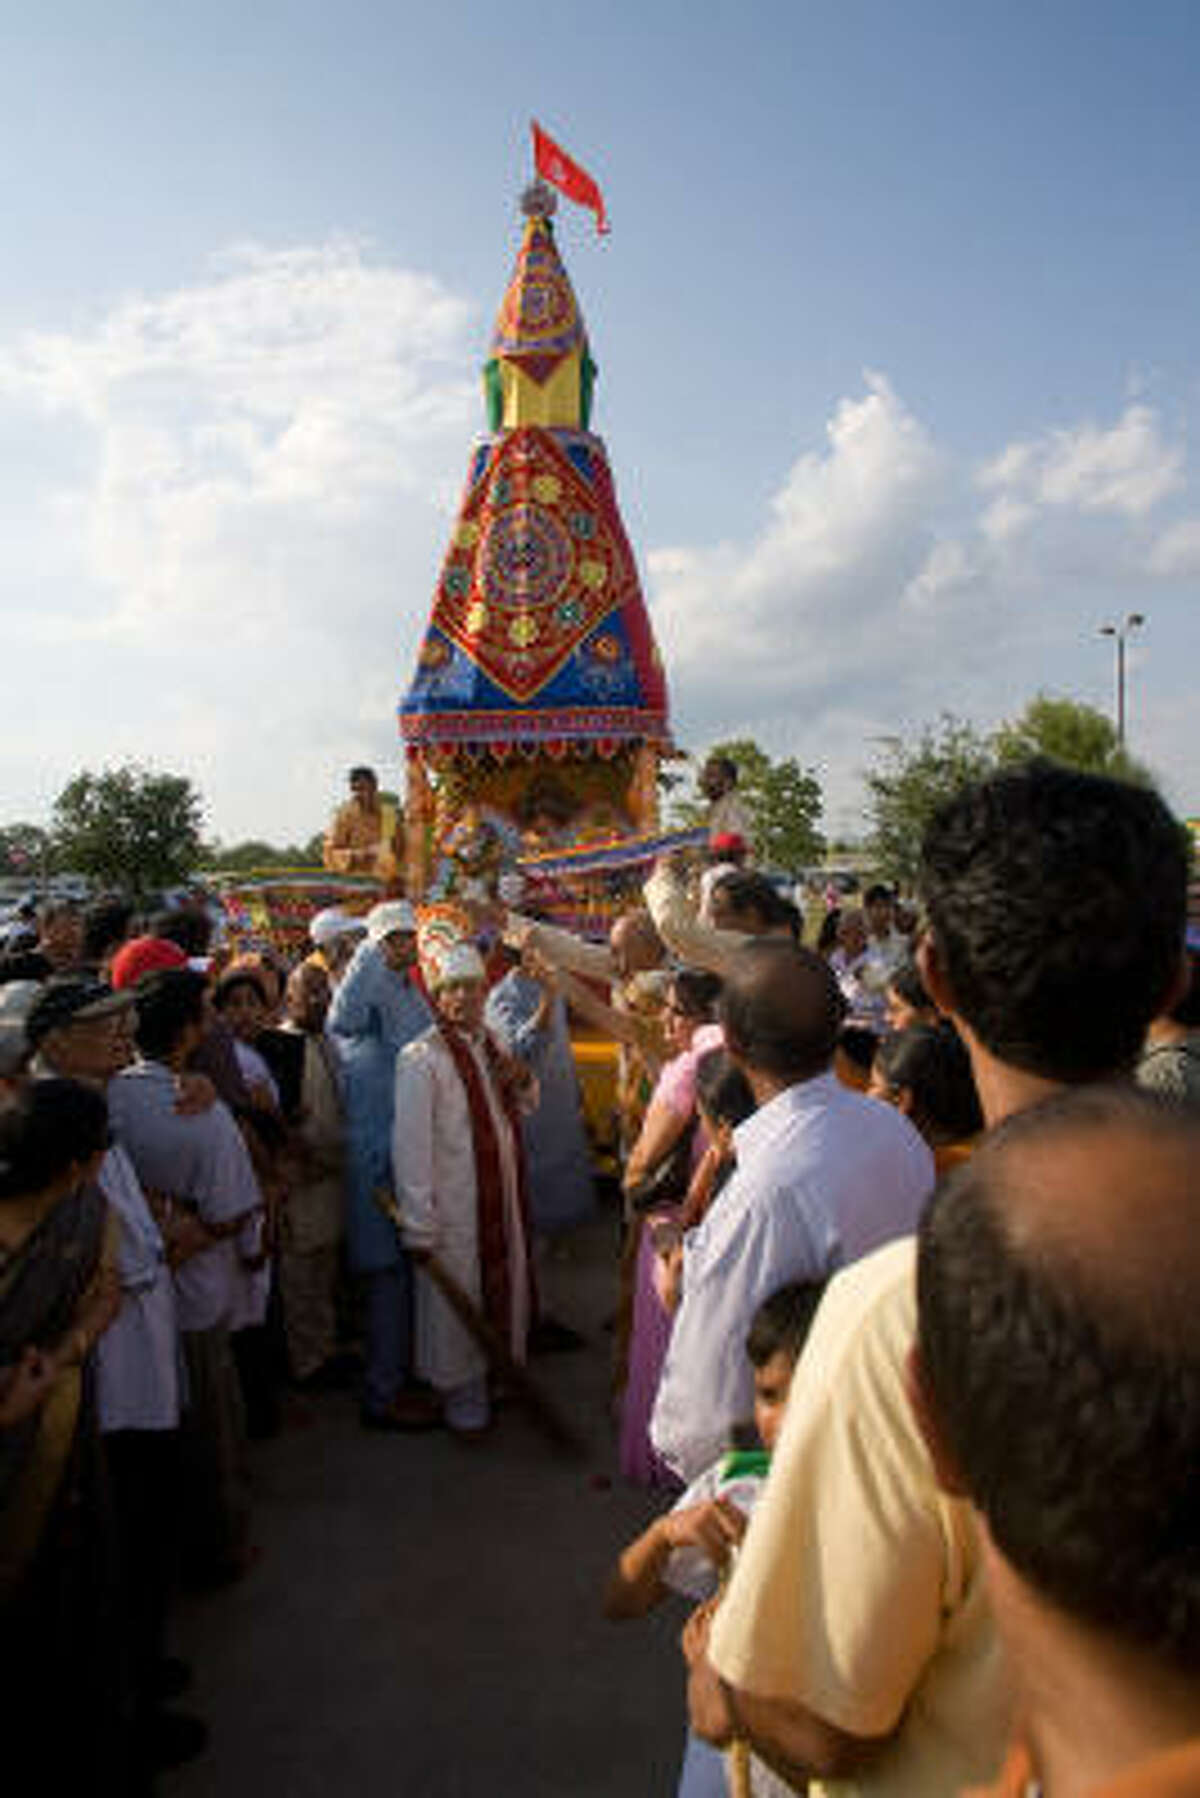 Devotees crowd around the chariot with the Deities.